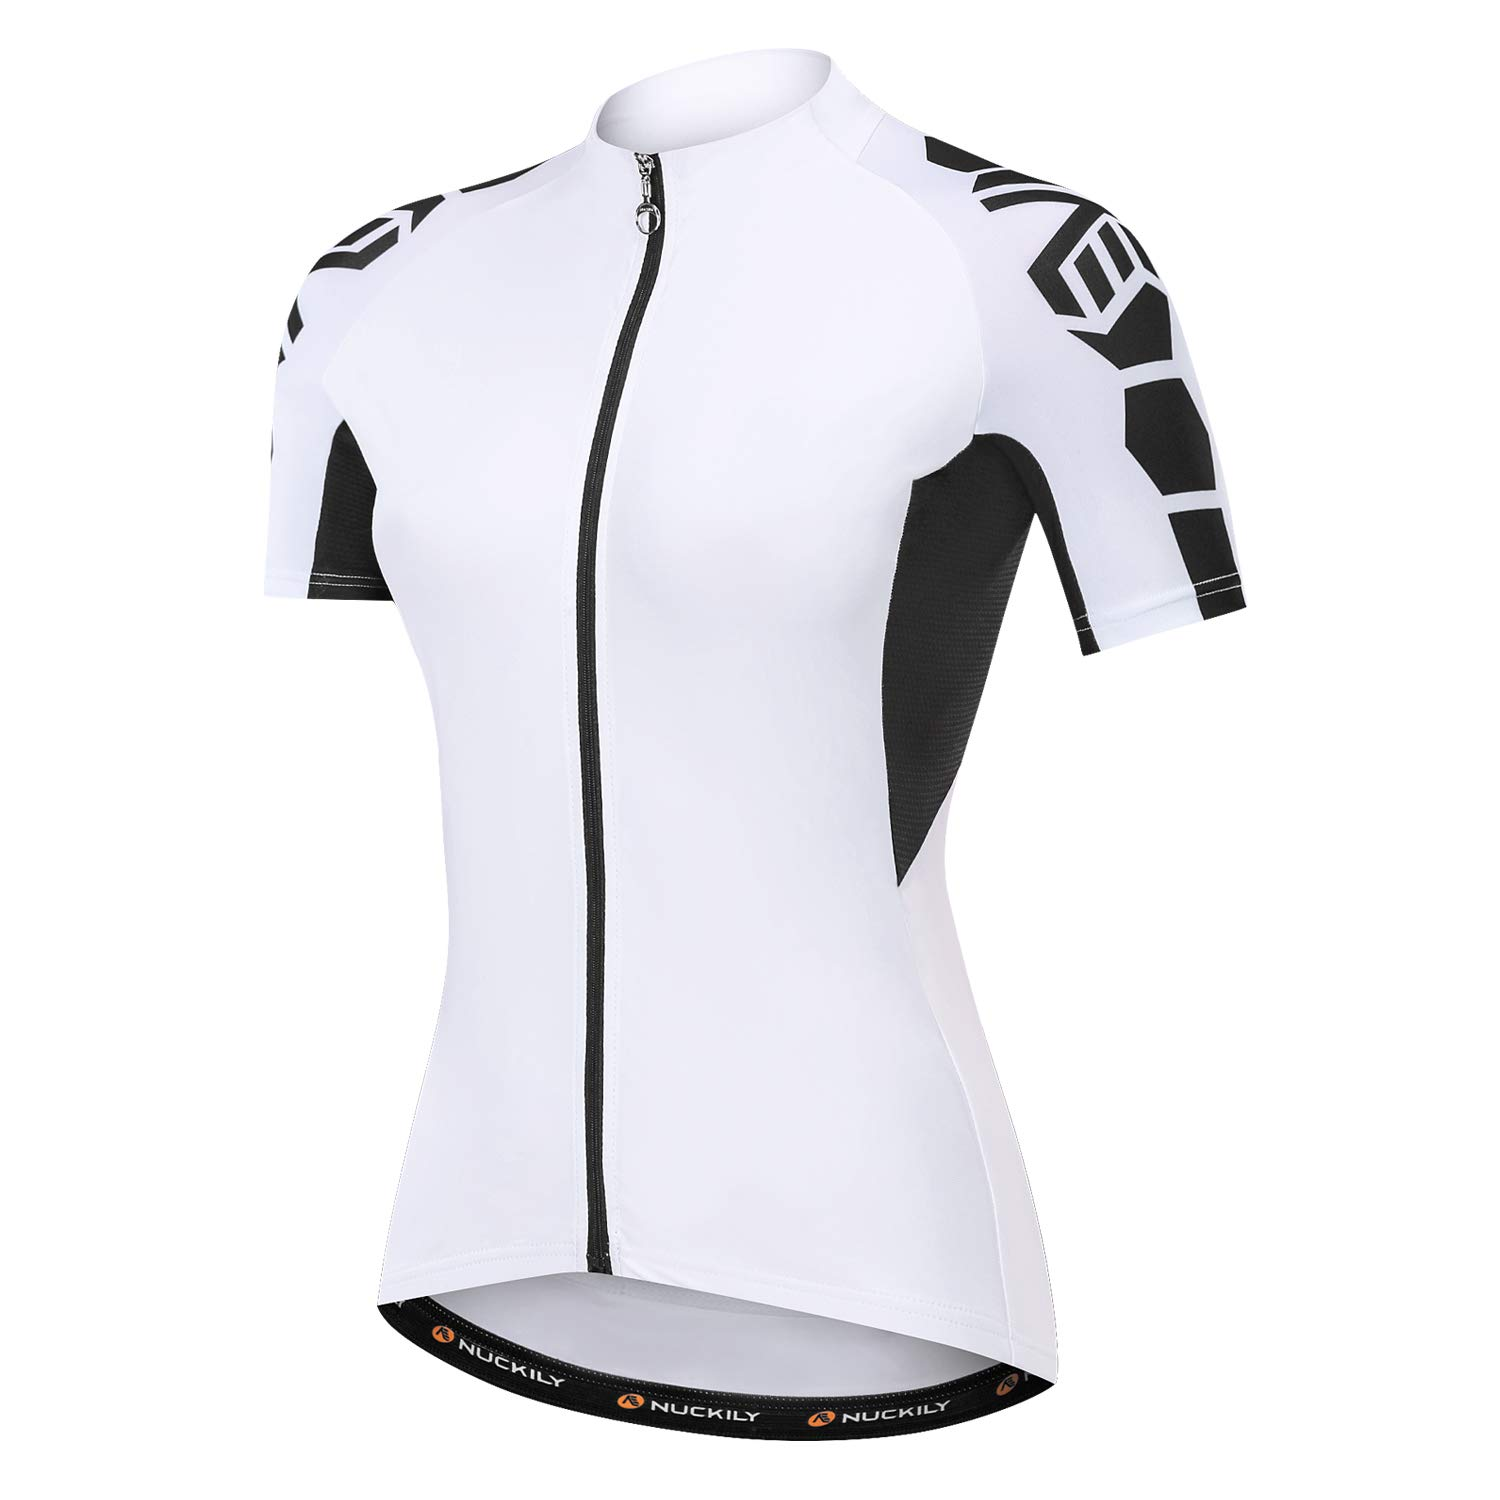 NUCKILY Women's Cycling Jersey Short Sleeve with 3 Pockets Bike Bicycle Clothing Biking Riding Shirts Cycle Wear